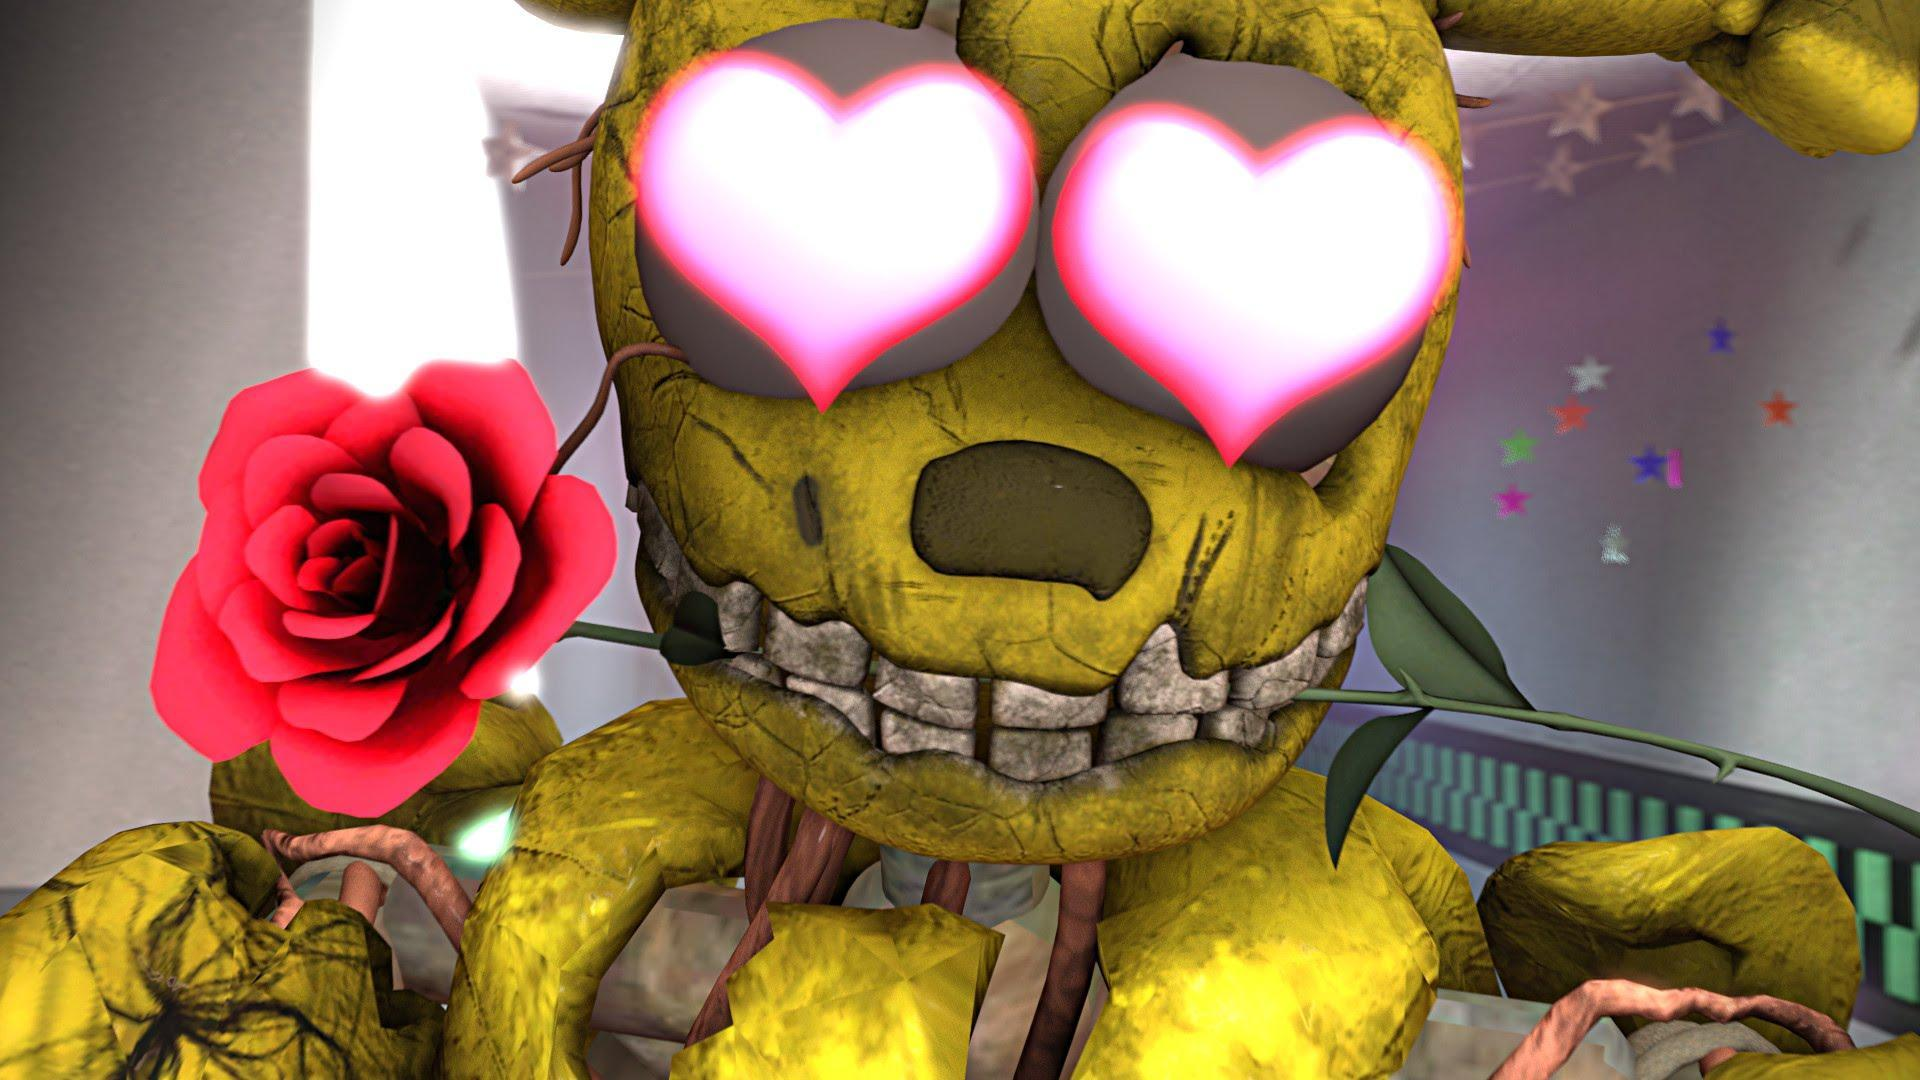 At the sfm Sample Story. SpringTrap fall in love with who?